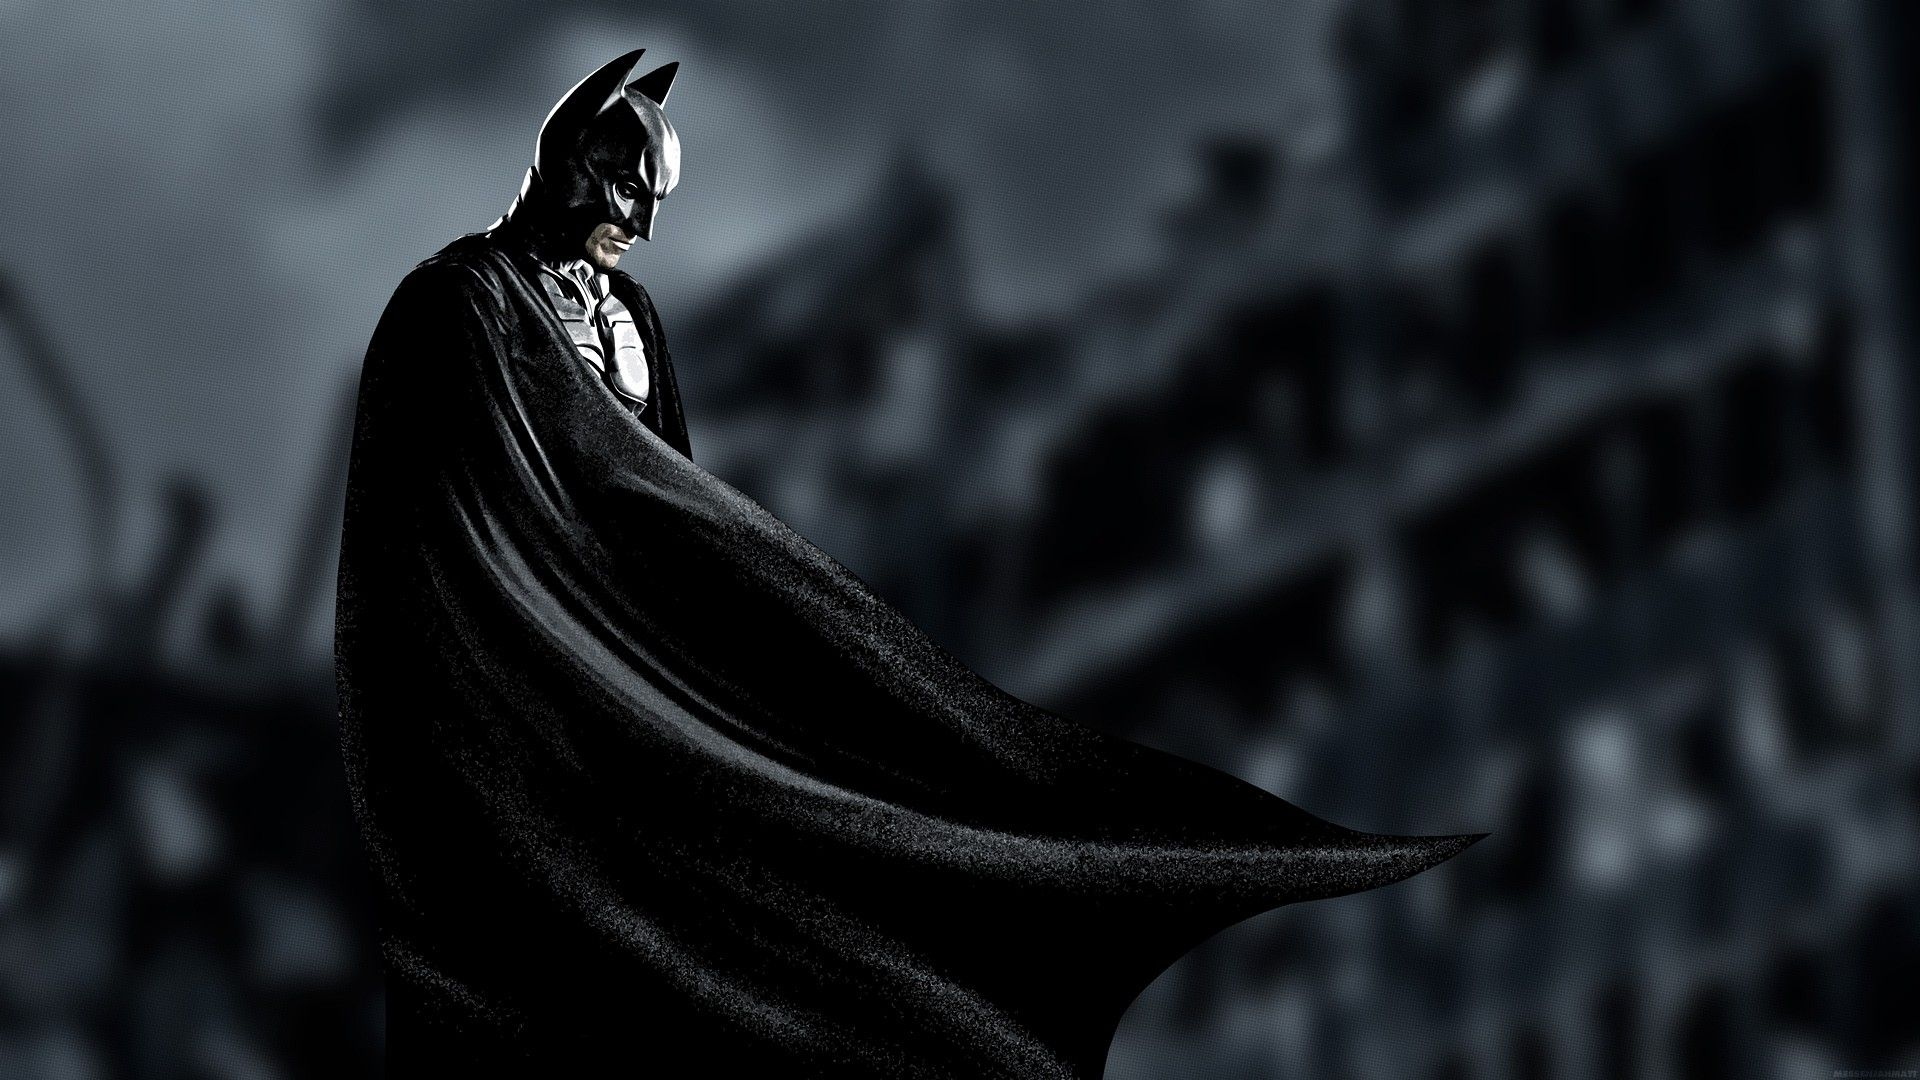 Hd wallpaper of batman - Collection Of Download Wallpaper Batman On Hdwallpapers